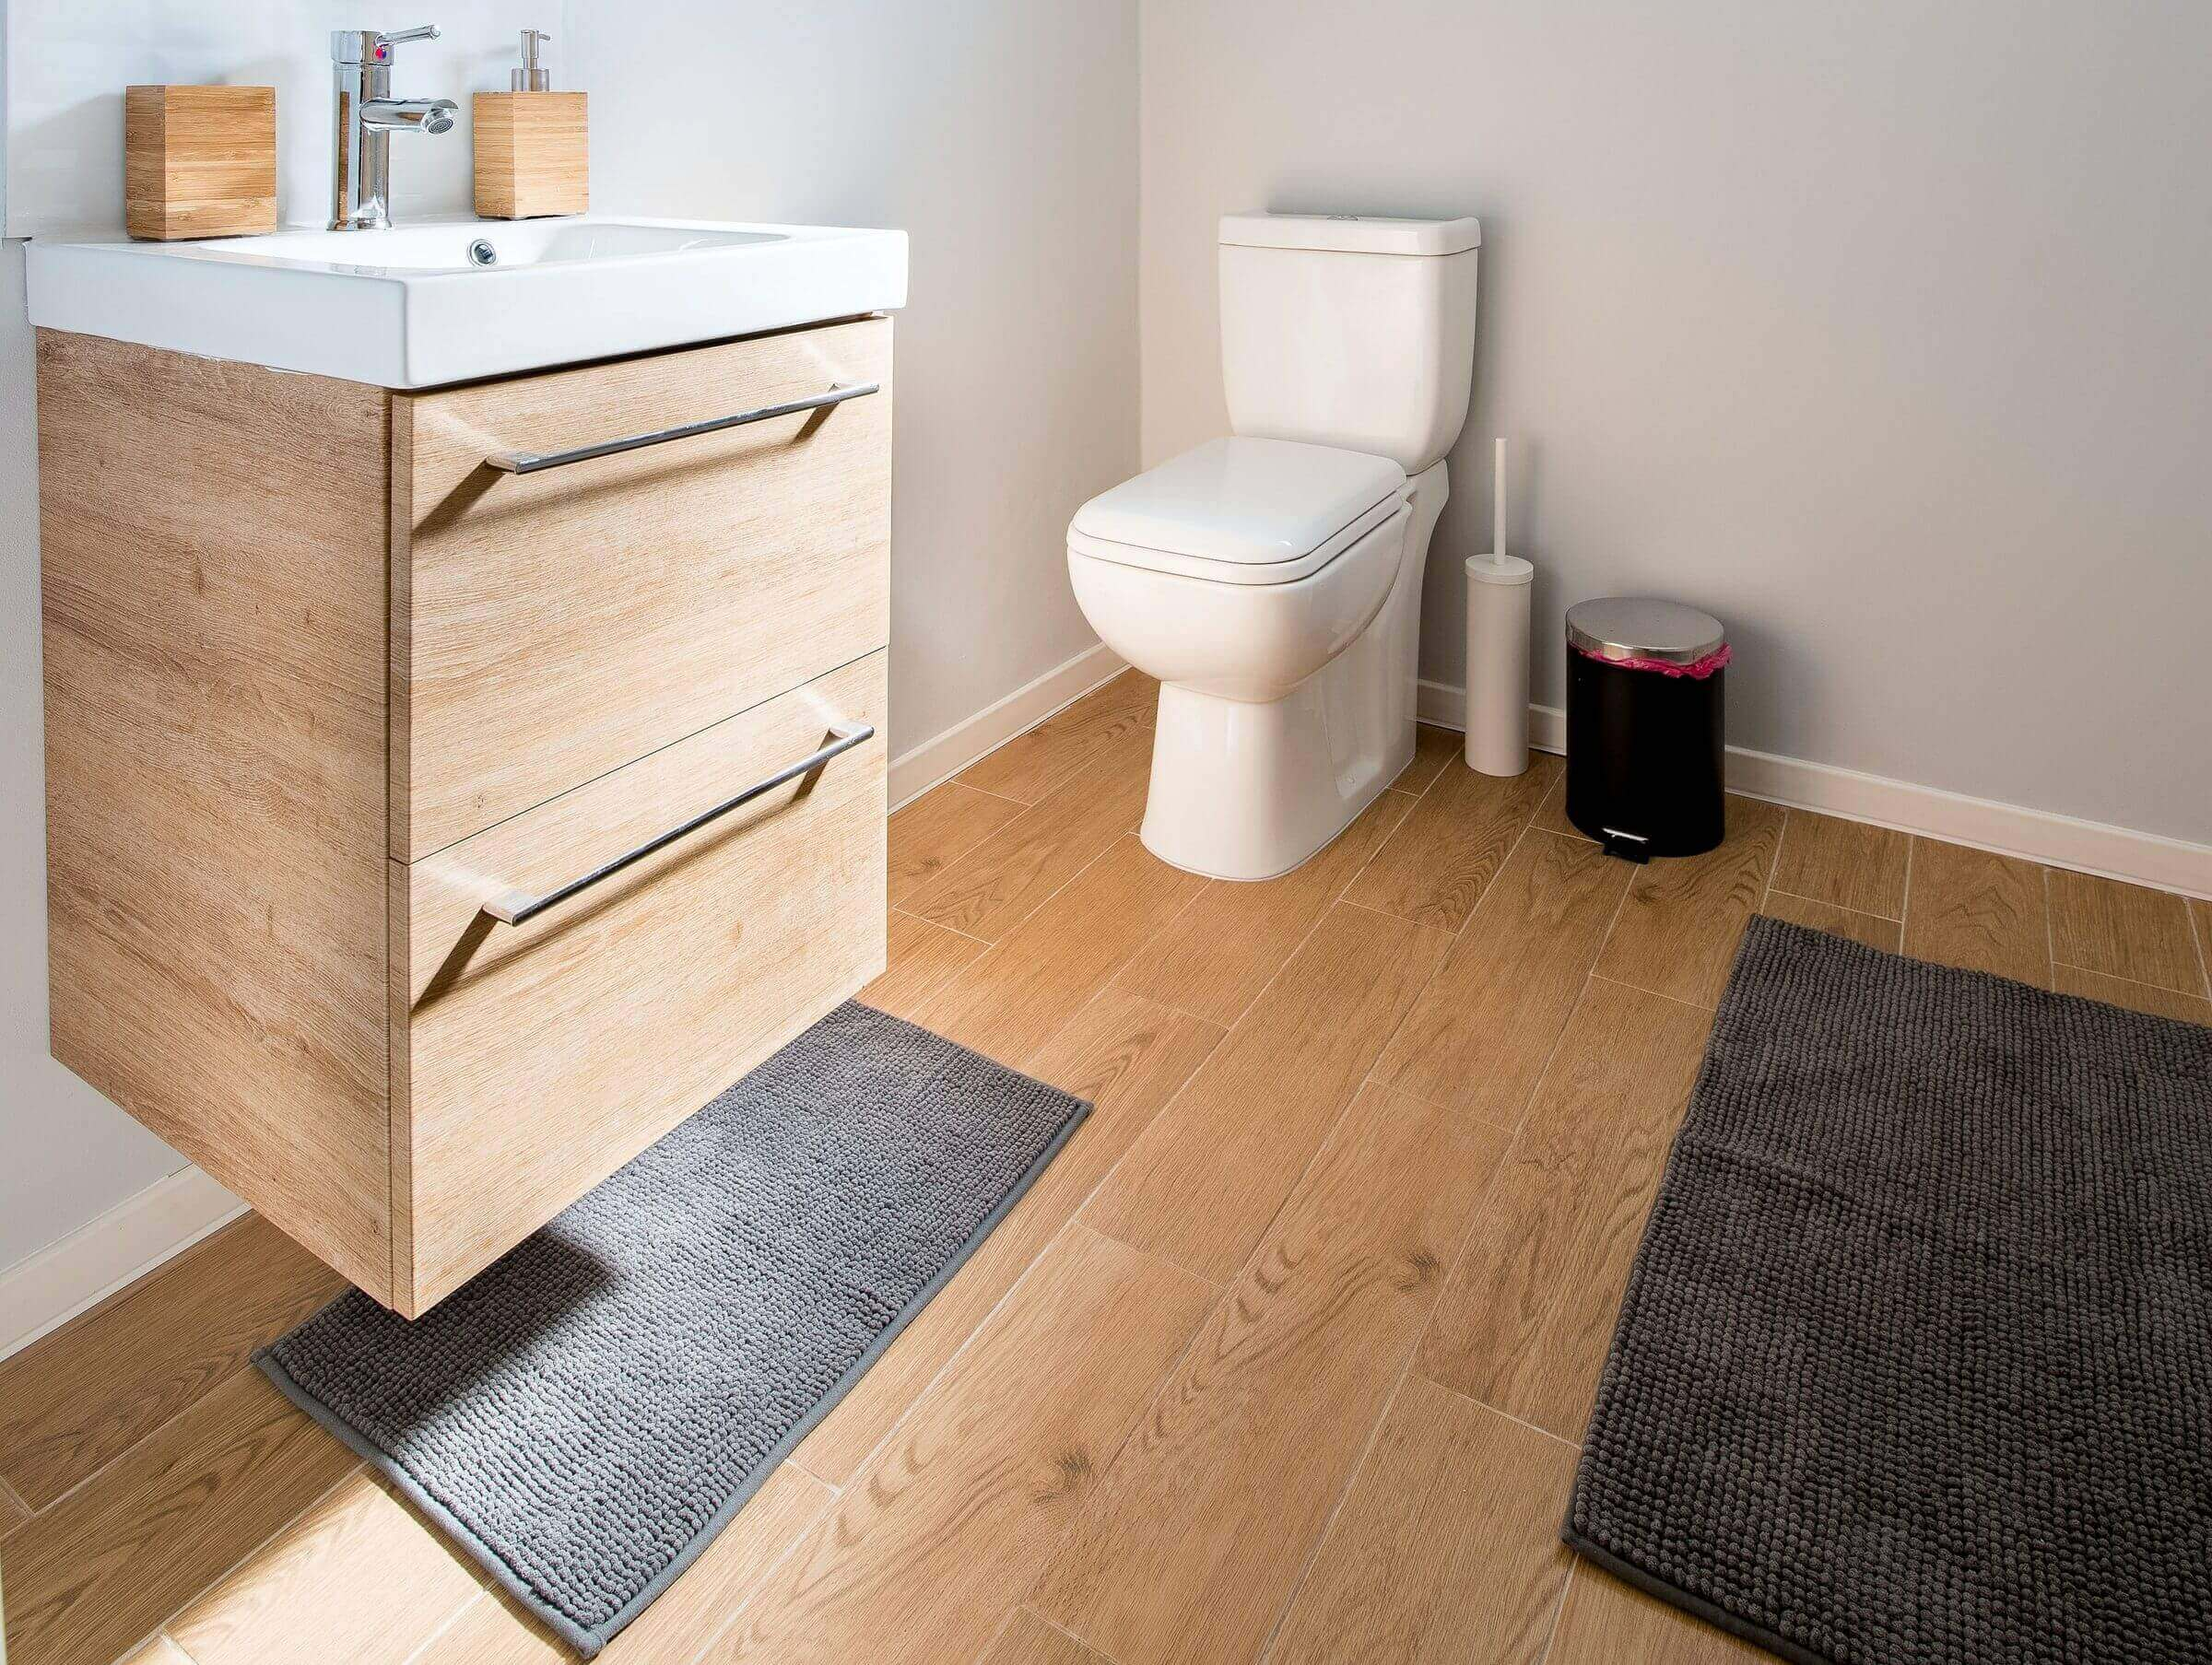 How to protect the floor around the toilet